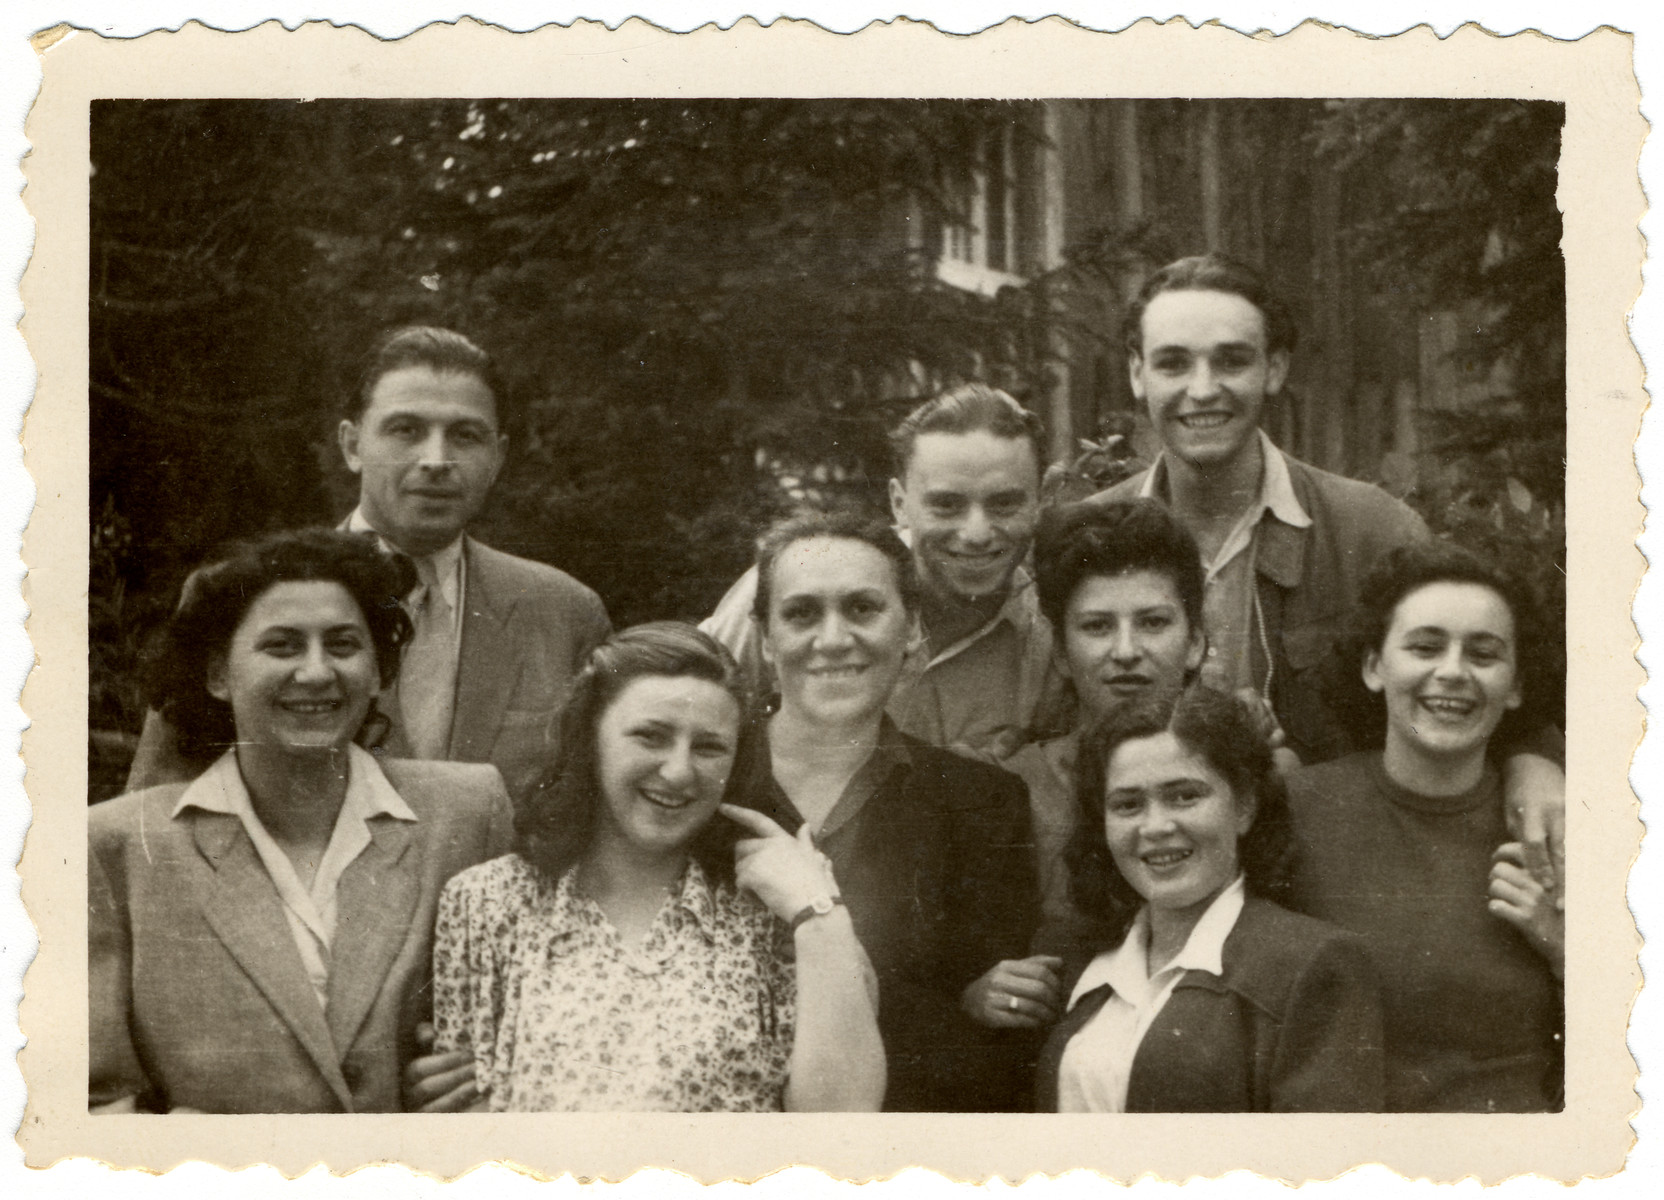 Young survivors pose with their nurse and doctor in a sanatorium in the Tatry Mountains.  Ruth Friedman is pictured second from the right.  The nurse is on the far left and the physician is the woman in the center.